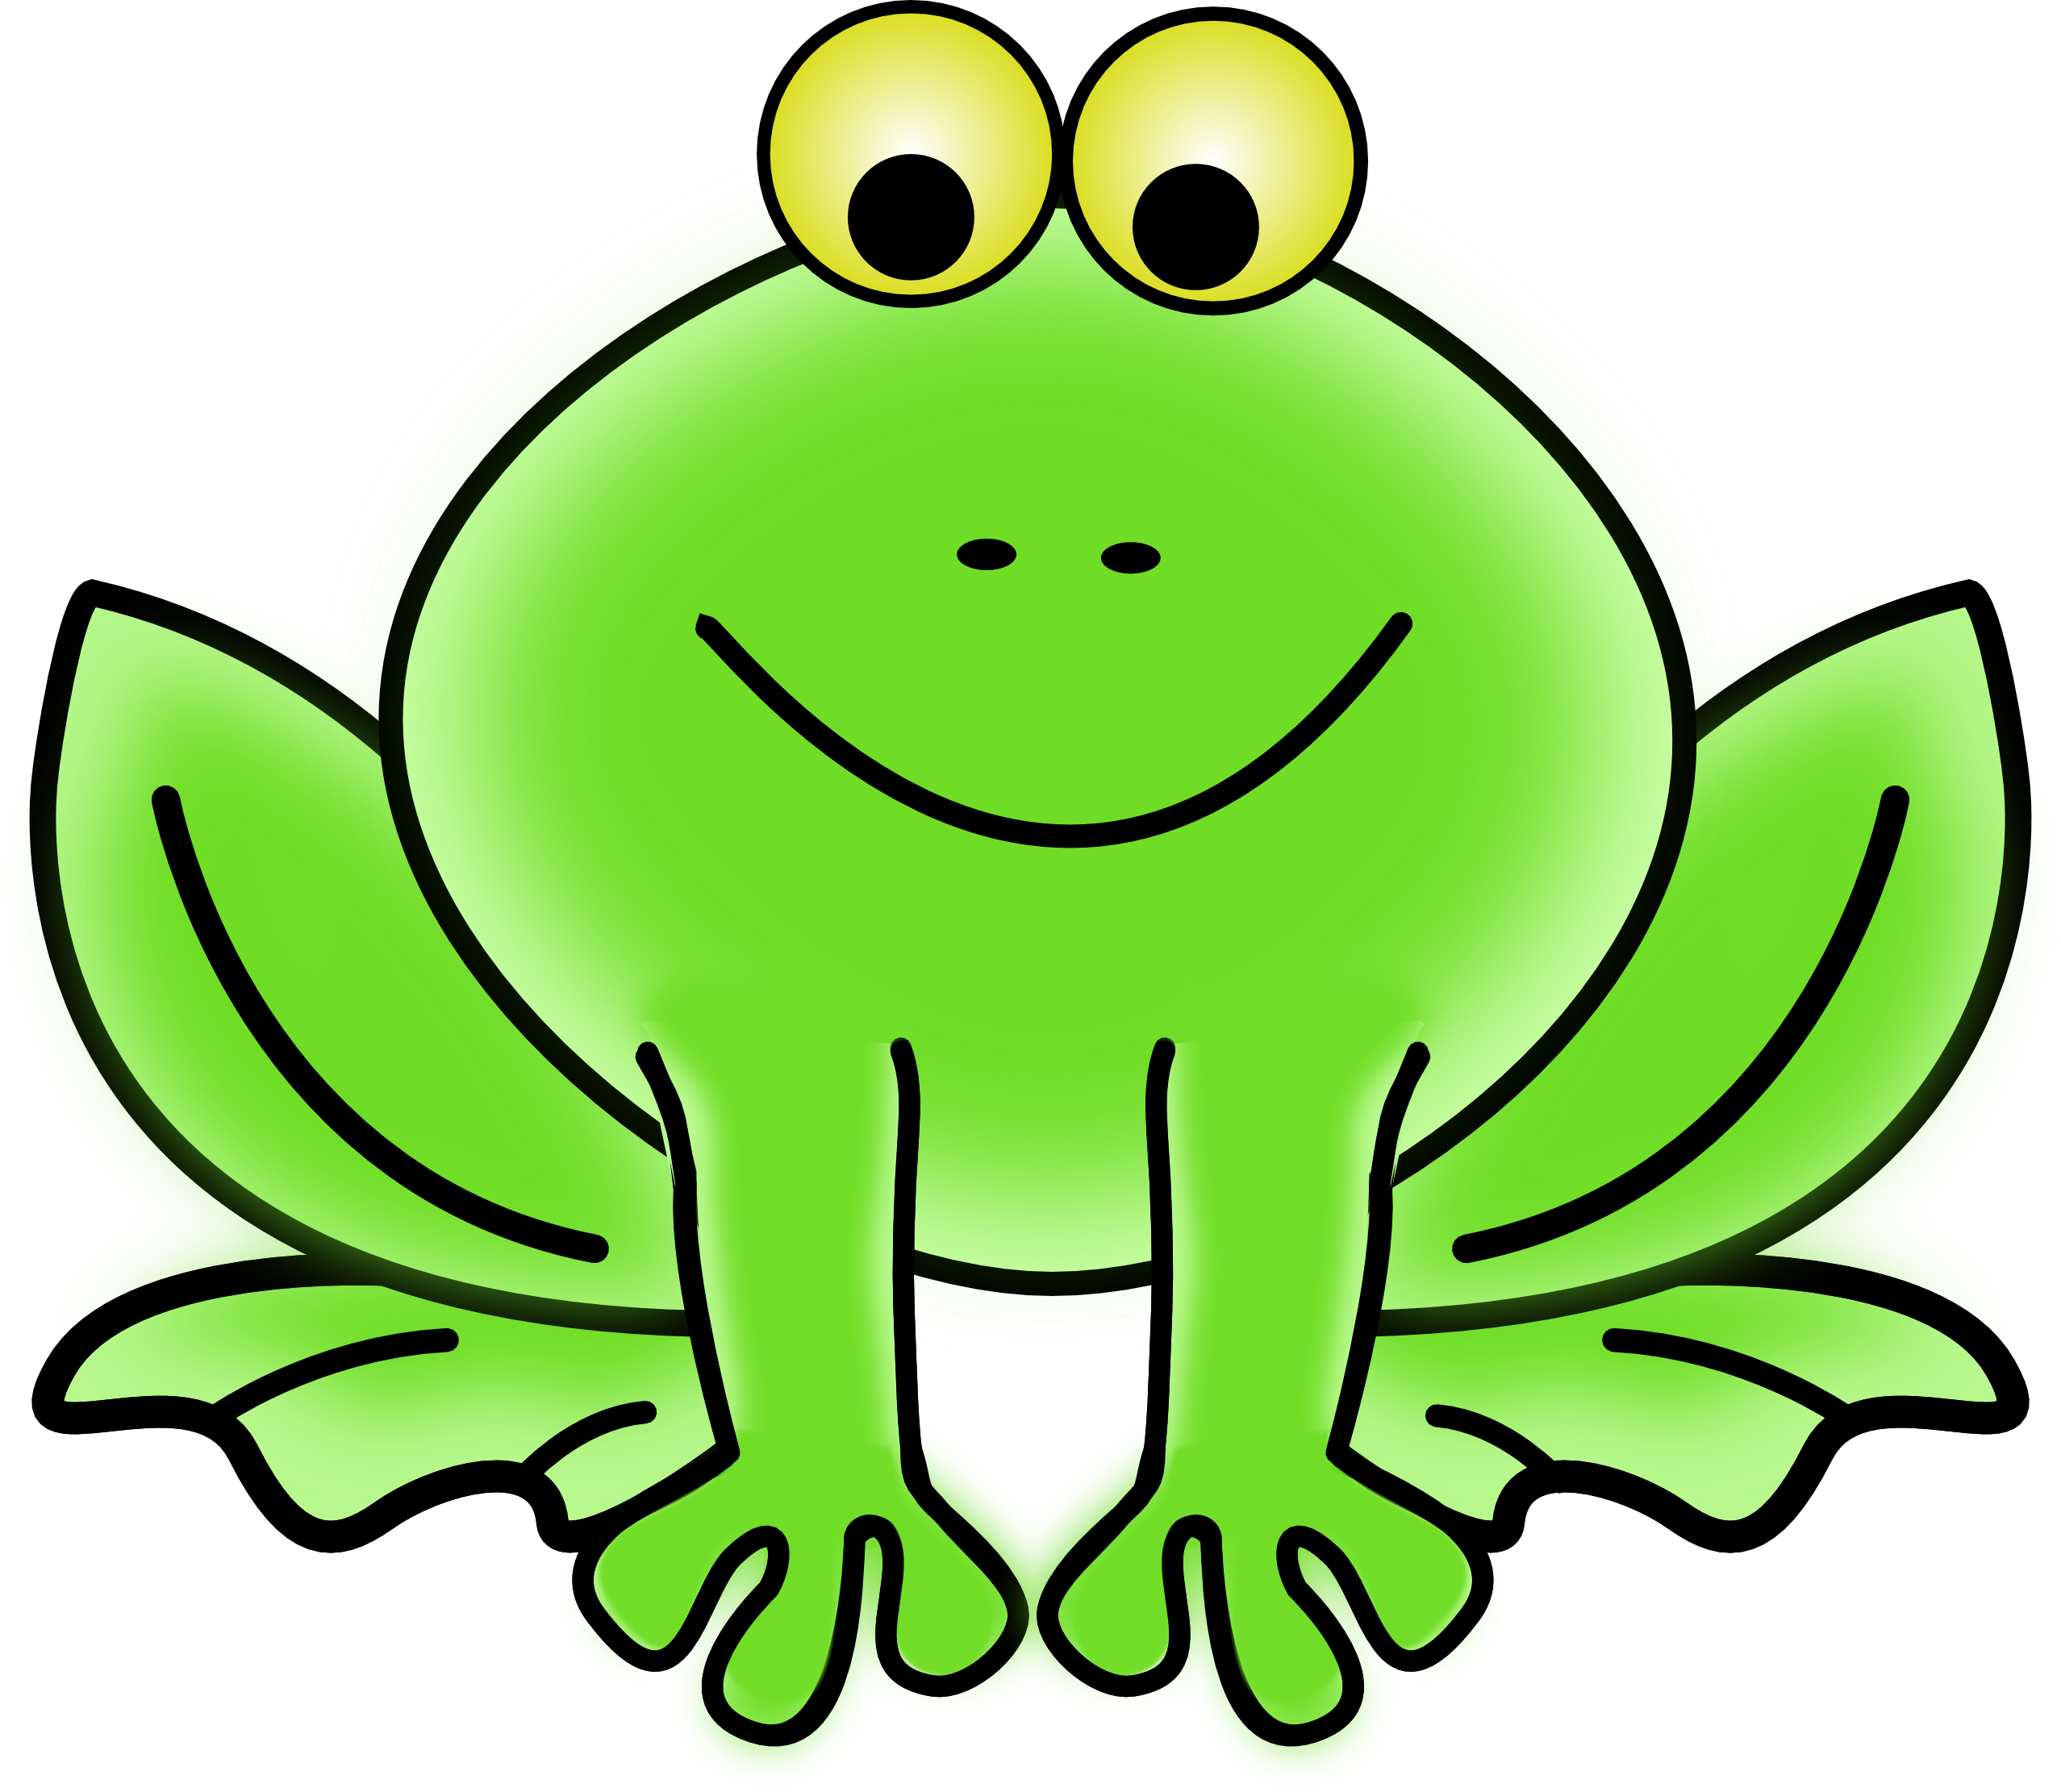 Frog clipart png. Collection of colorful